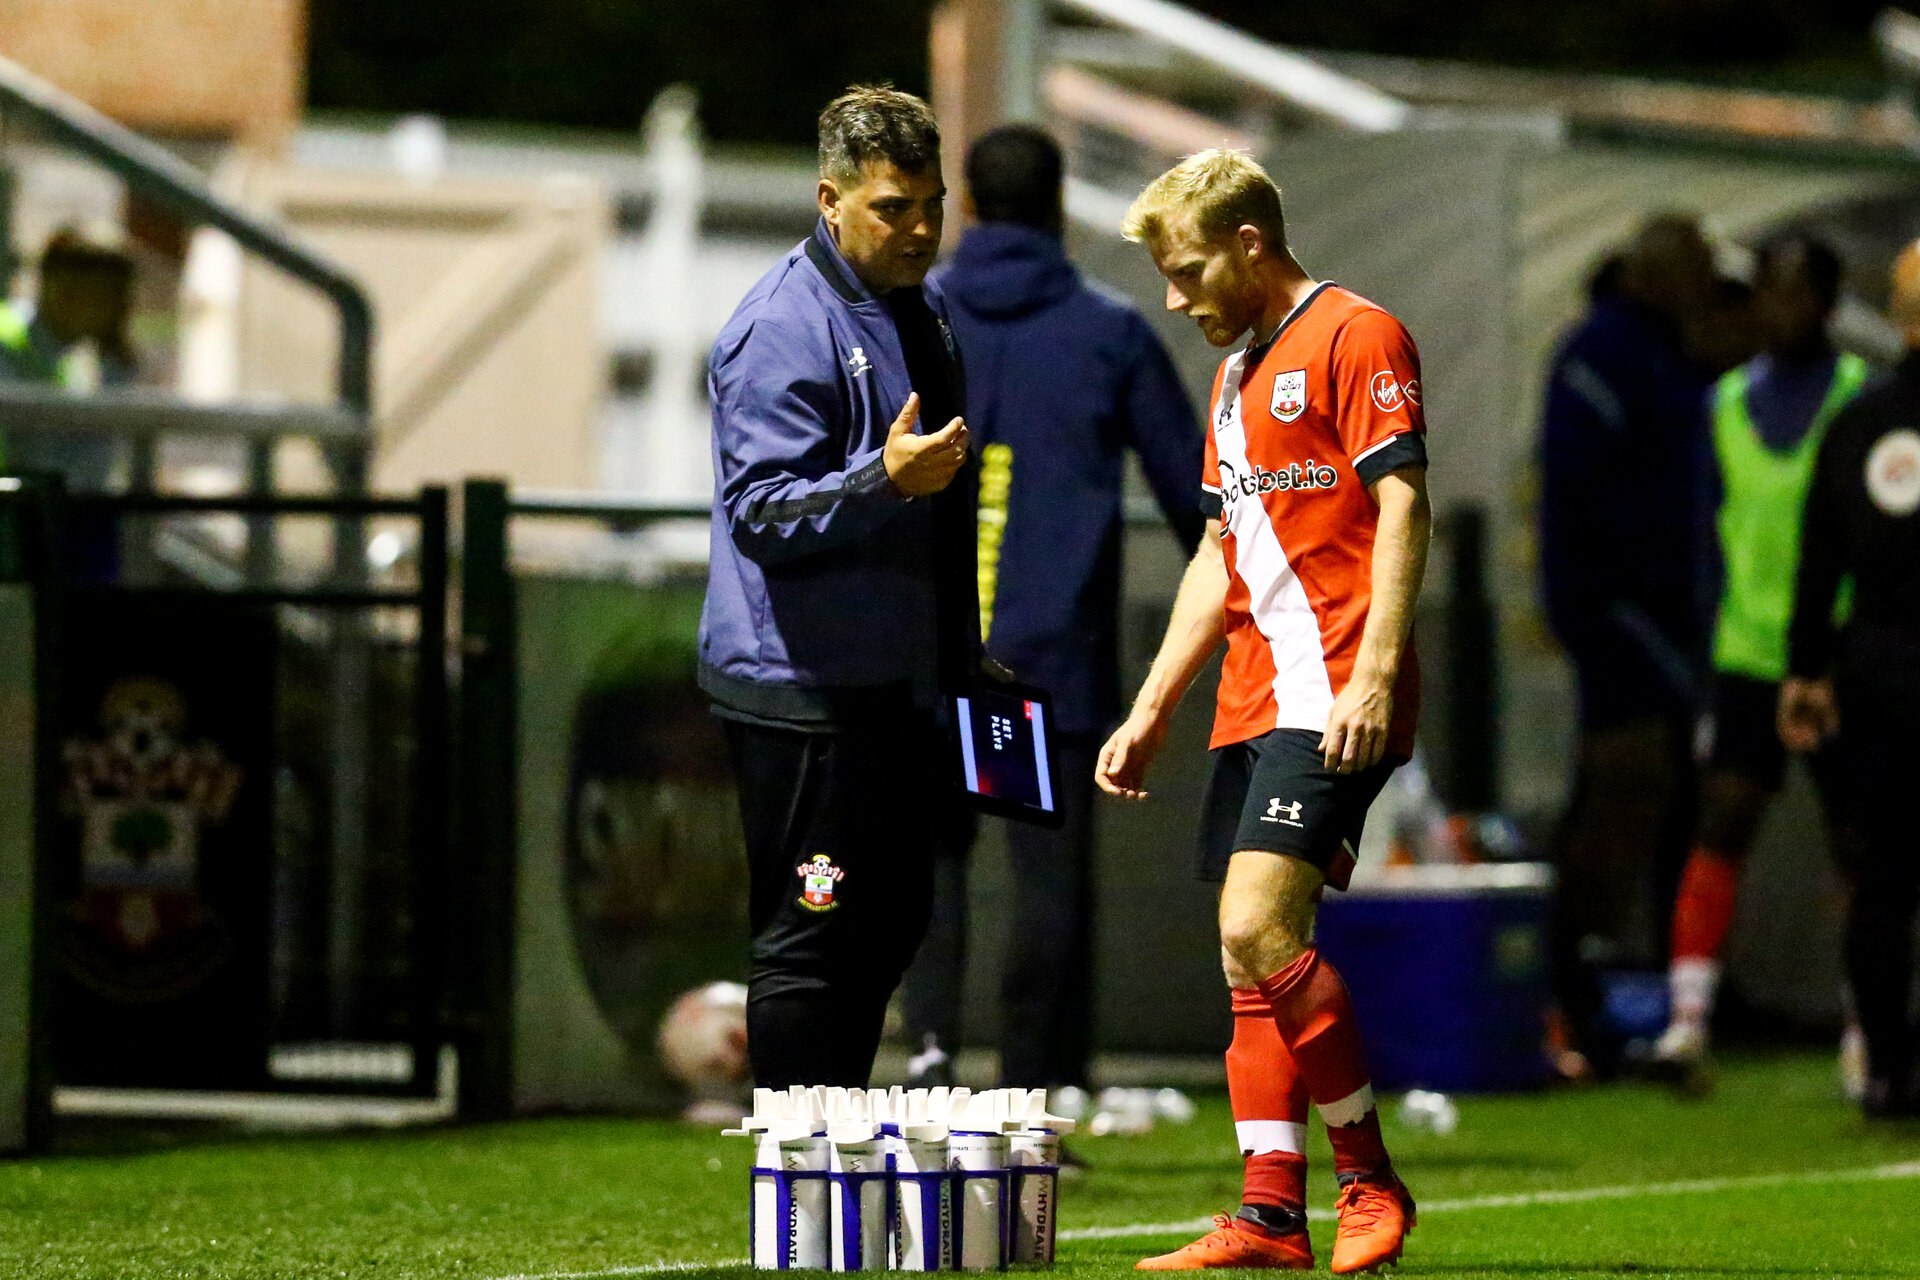 SOUTHAMPTON, ENGLAND - SEPTEMBER 18: David Horseman (L) and Josh Sims (R) of Southampton during the Premier League 2 match between Southampton FC B Team and Chelsea FC at Snows Stadium on September 18, 2020 in Southampton, England. (Photo by Isabelle Field/Southampton FC via Getty Images)